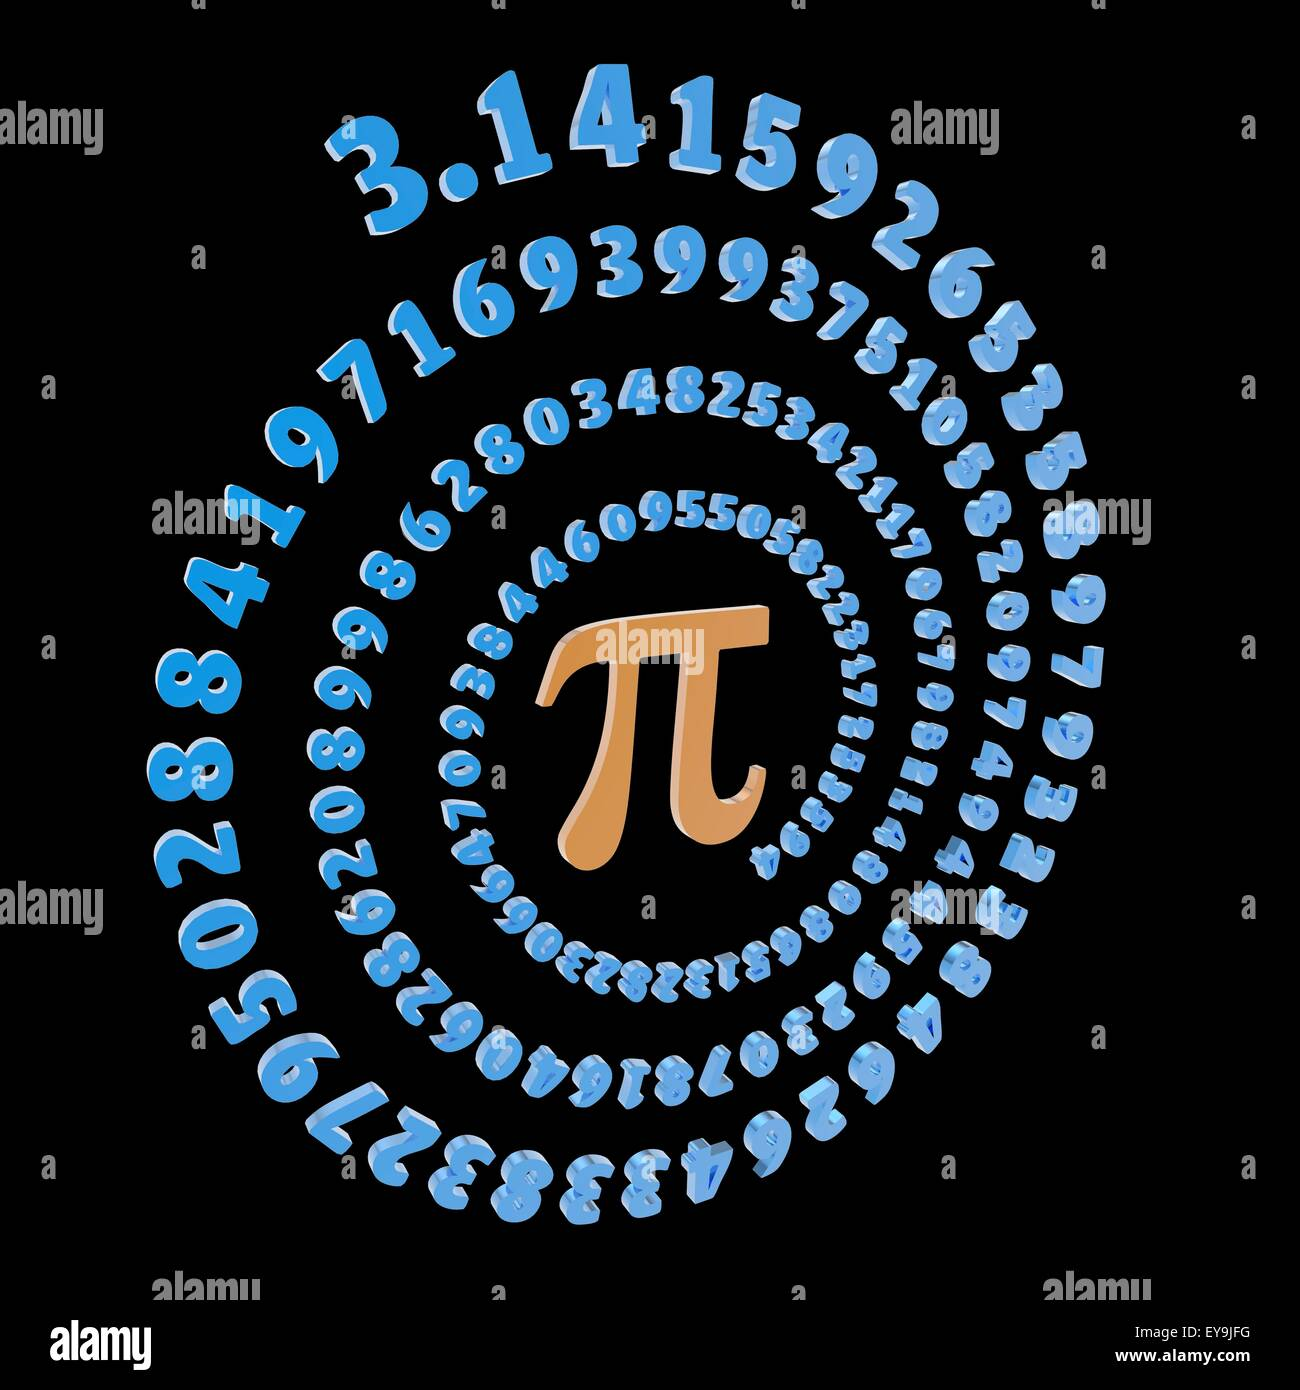 Pi symbol stock photos pi symbol stock images alamy pi greek letter orange is the symbol used in mathematics to represent a constant biocorpaavc